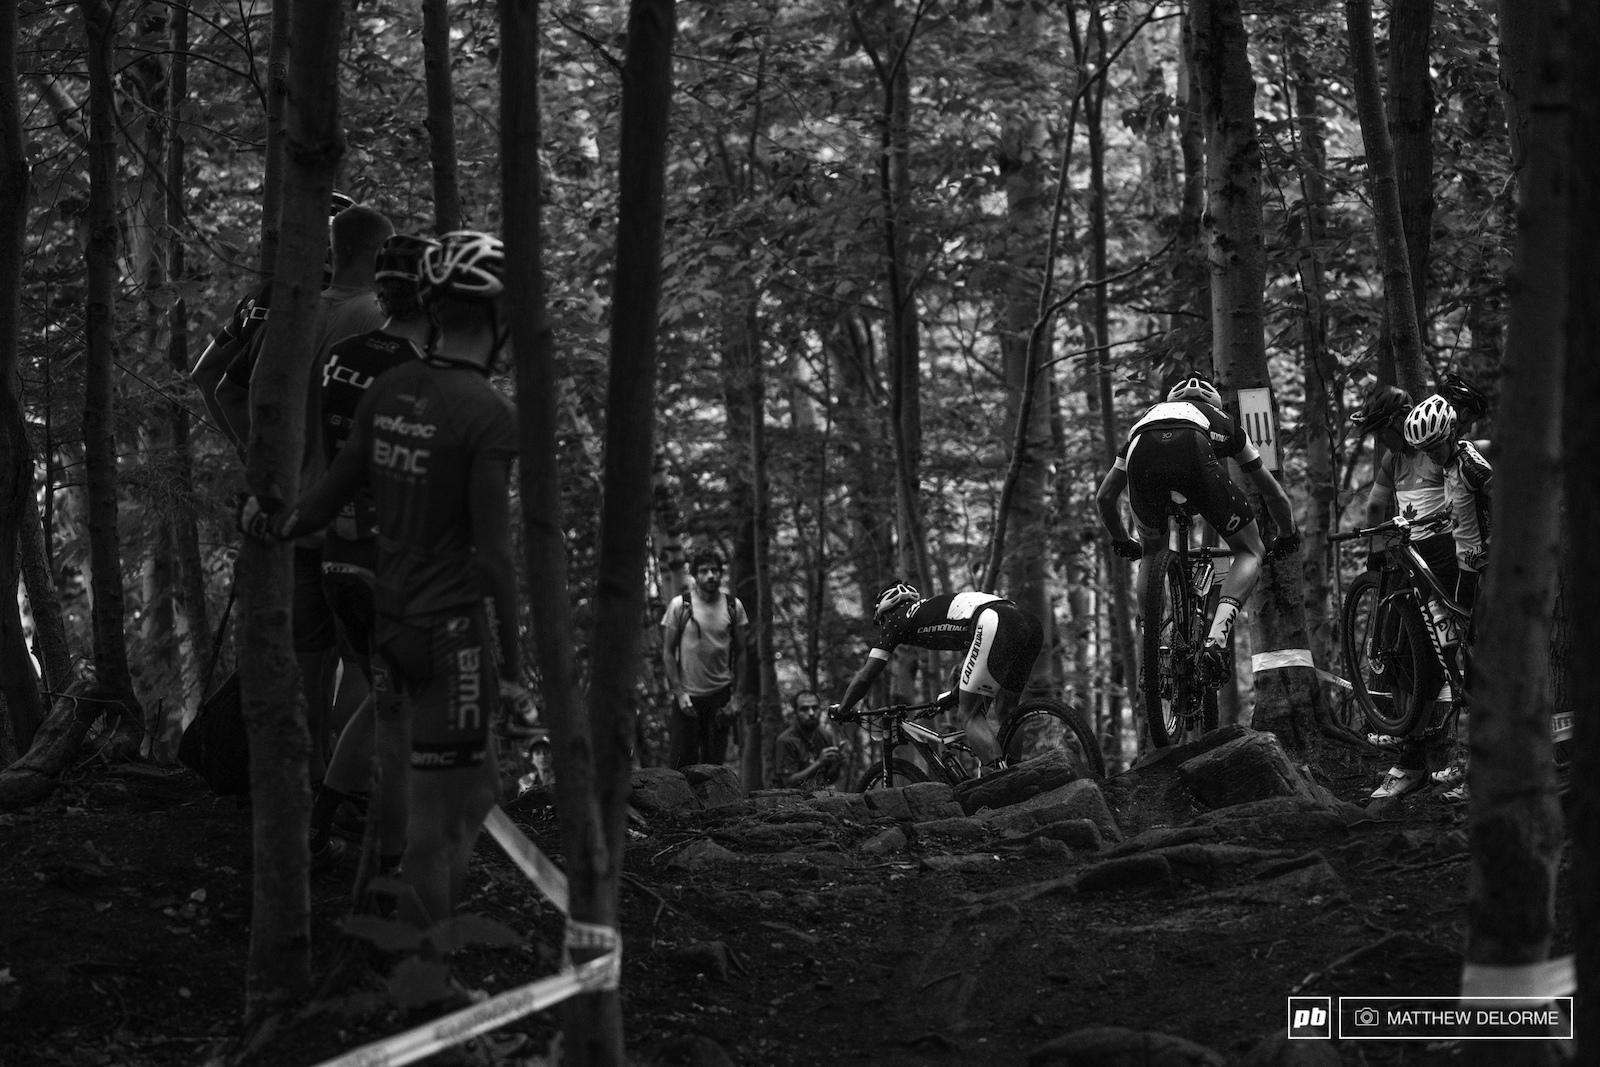 The Cannondale crew giving a lesson to onlookers on how to use speed to stay on line though slick rocks.